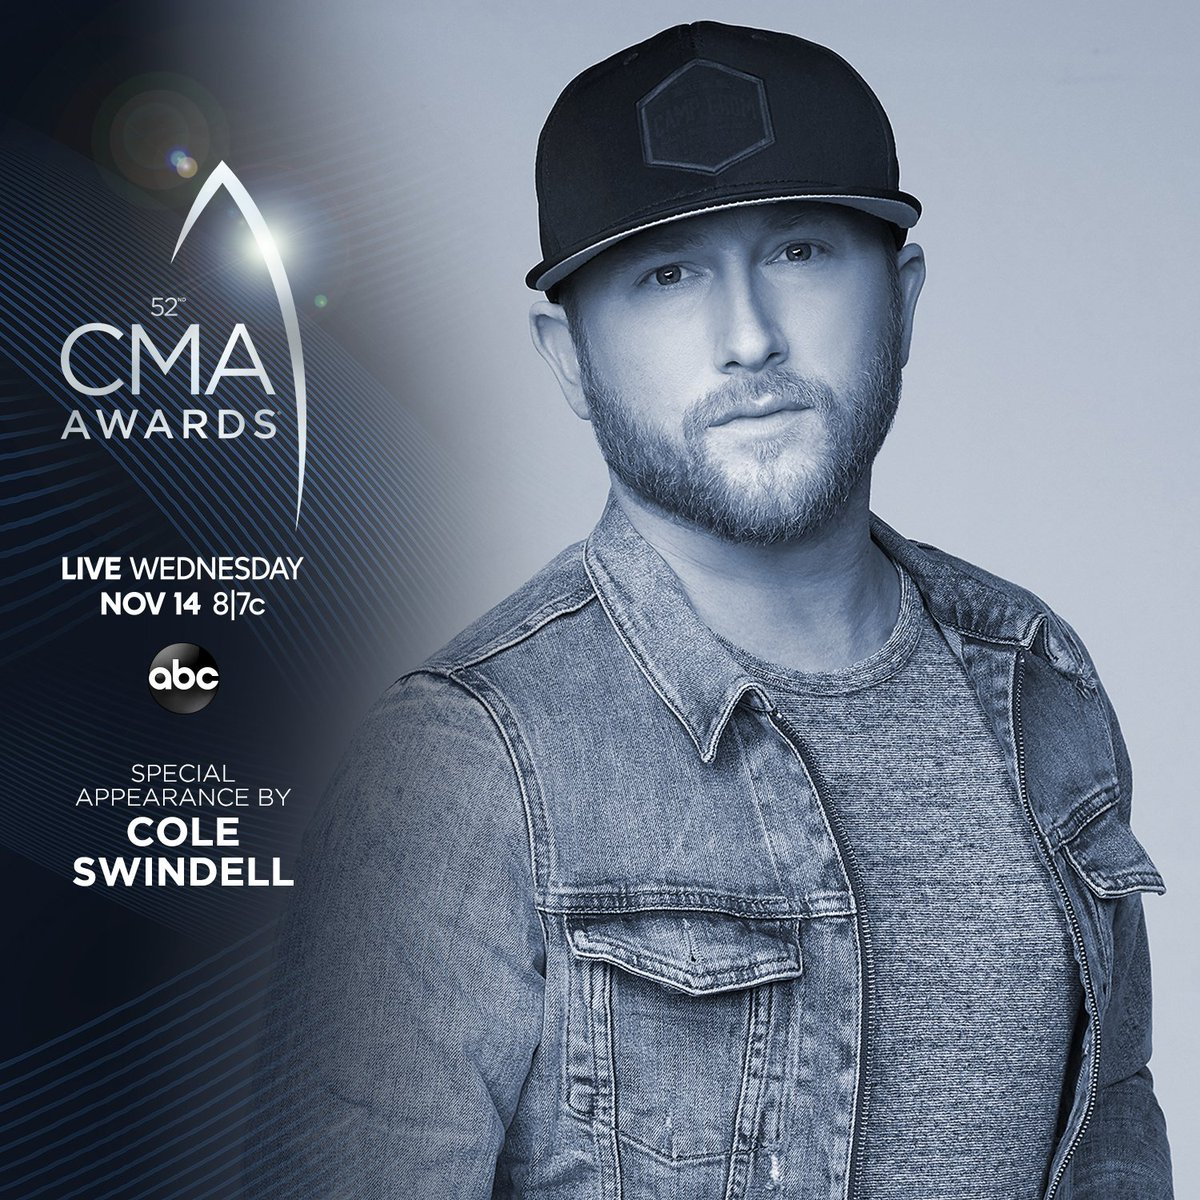 The secret is out! @ColeSwindell will make a special appearance during the #CMAawards Wednesday at 8|7c on @ABCNetwork. CMAawards.com